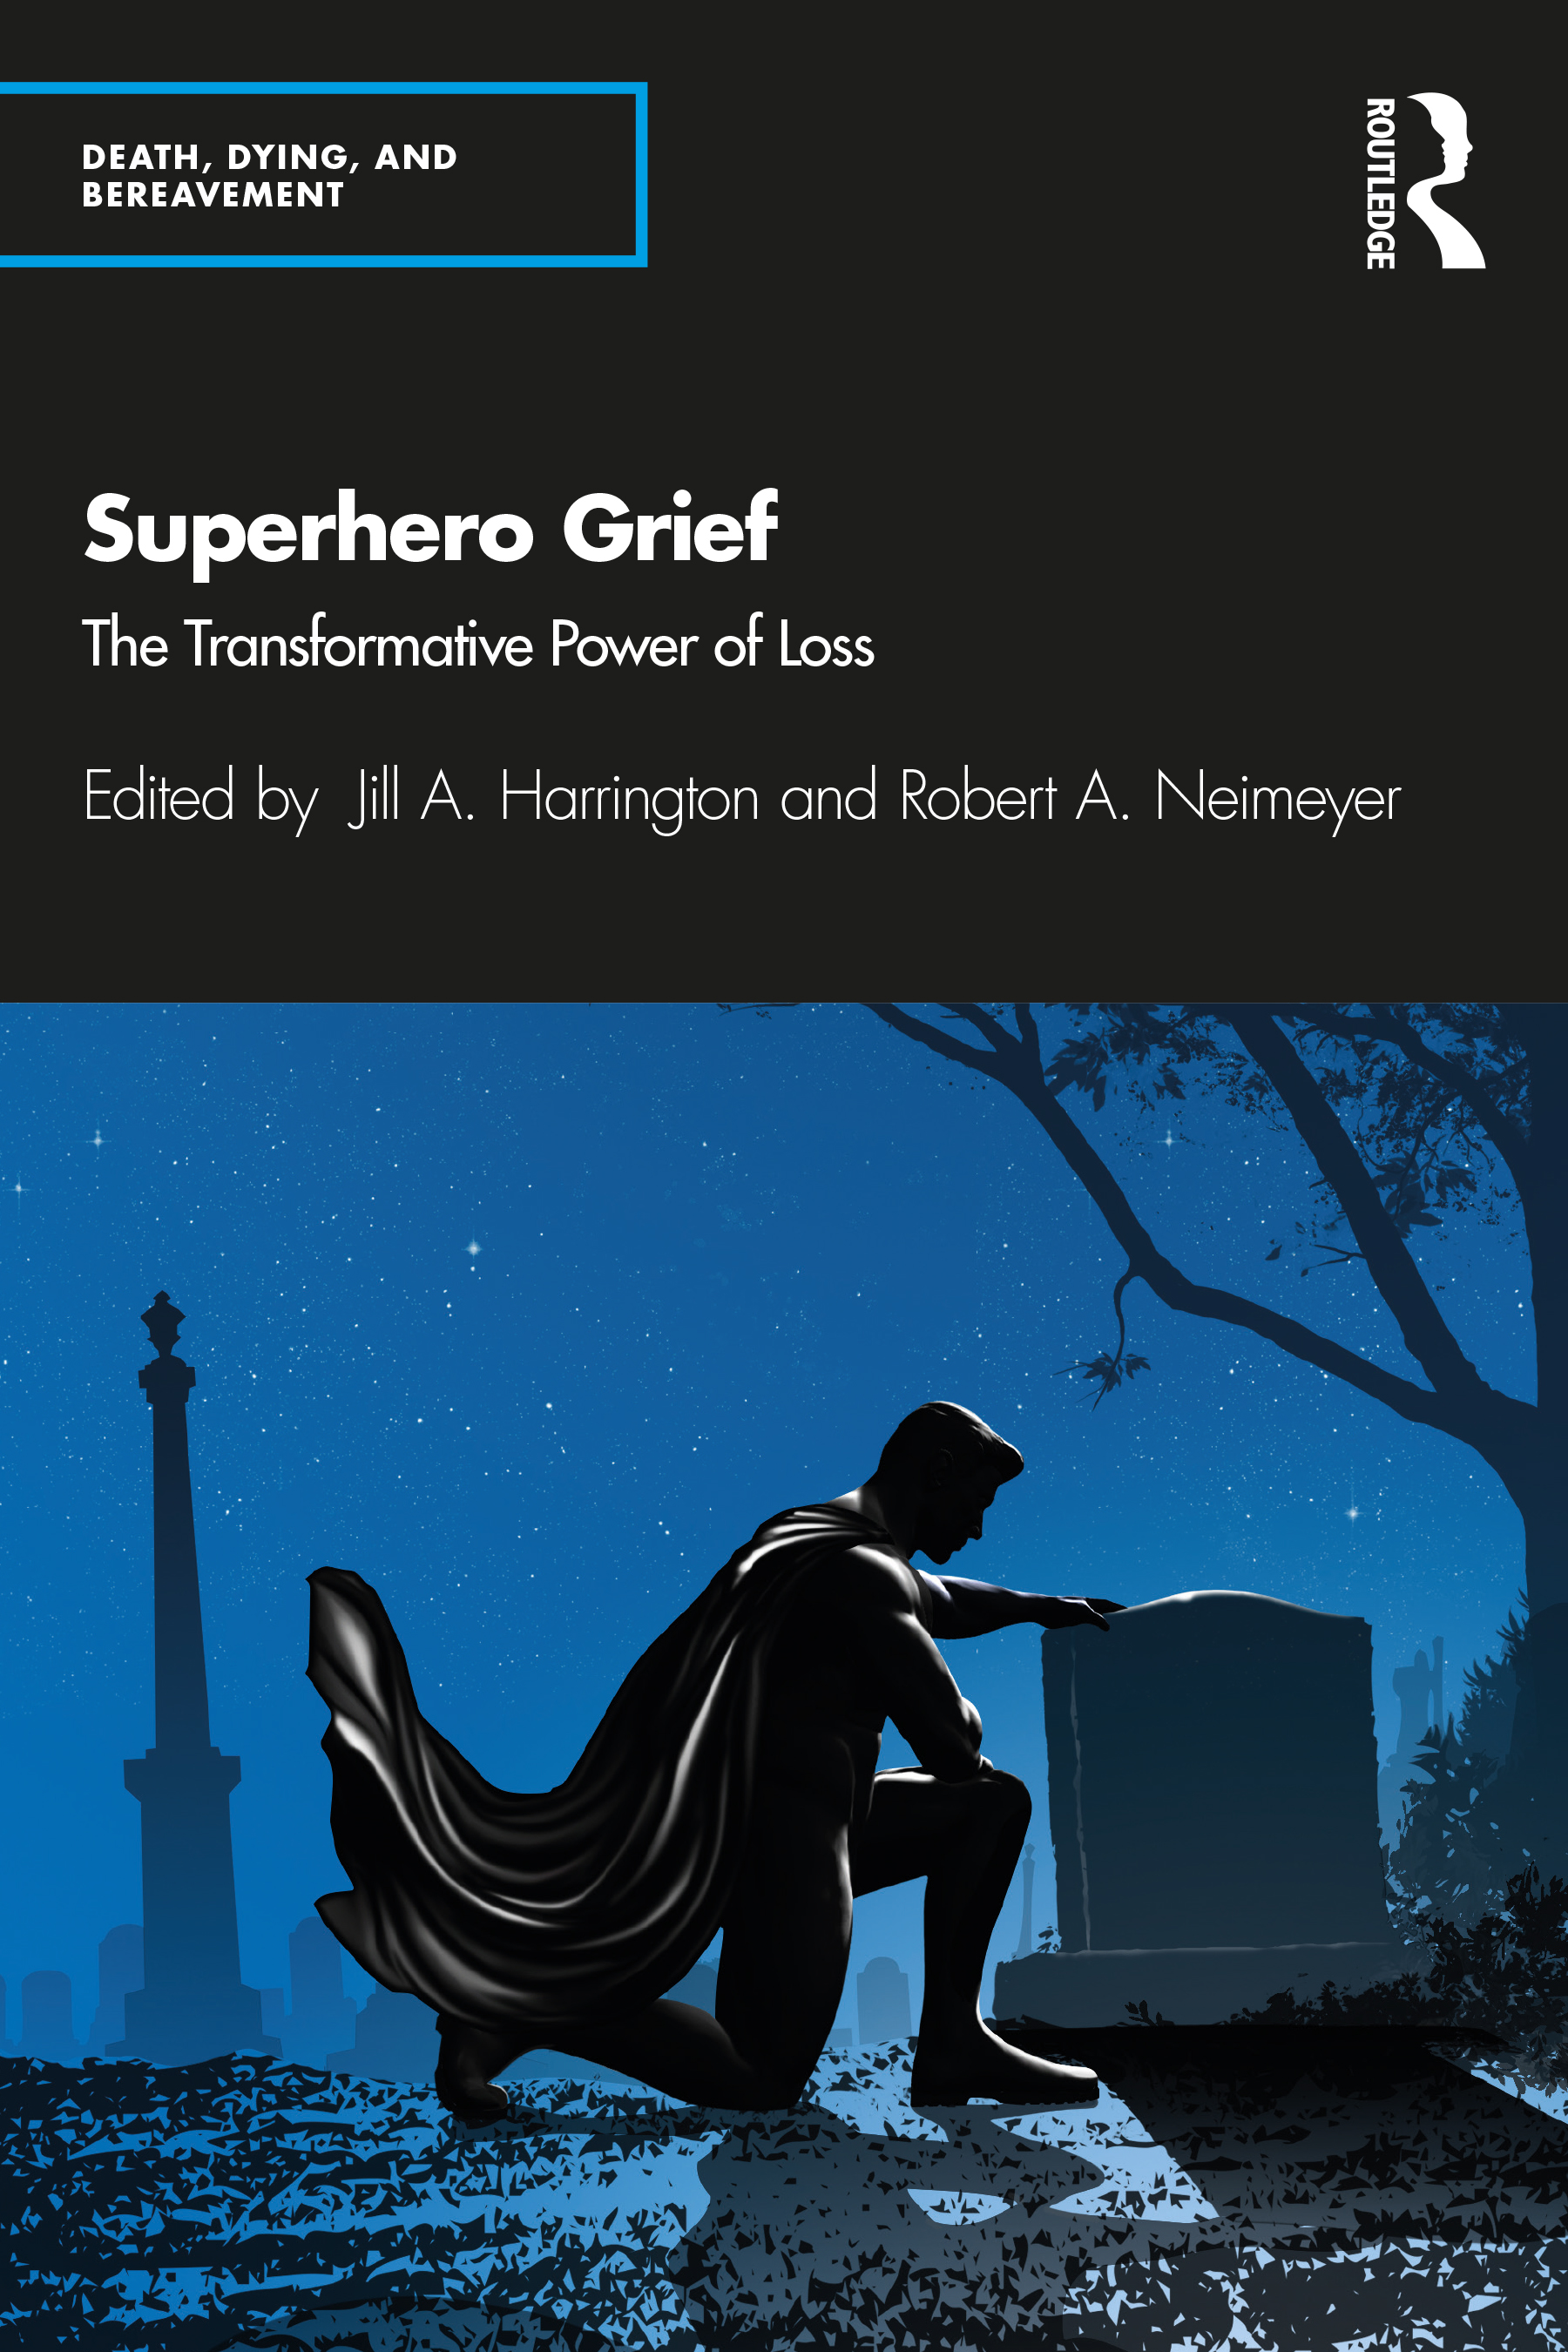 The Flash and Disenfranchised Grief